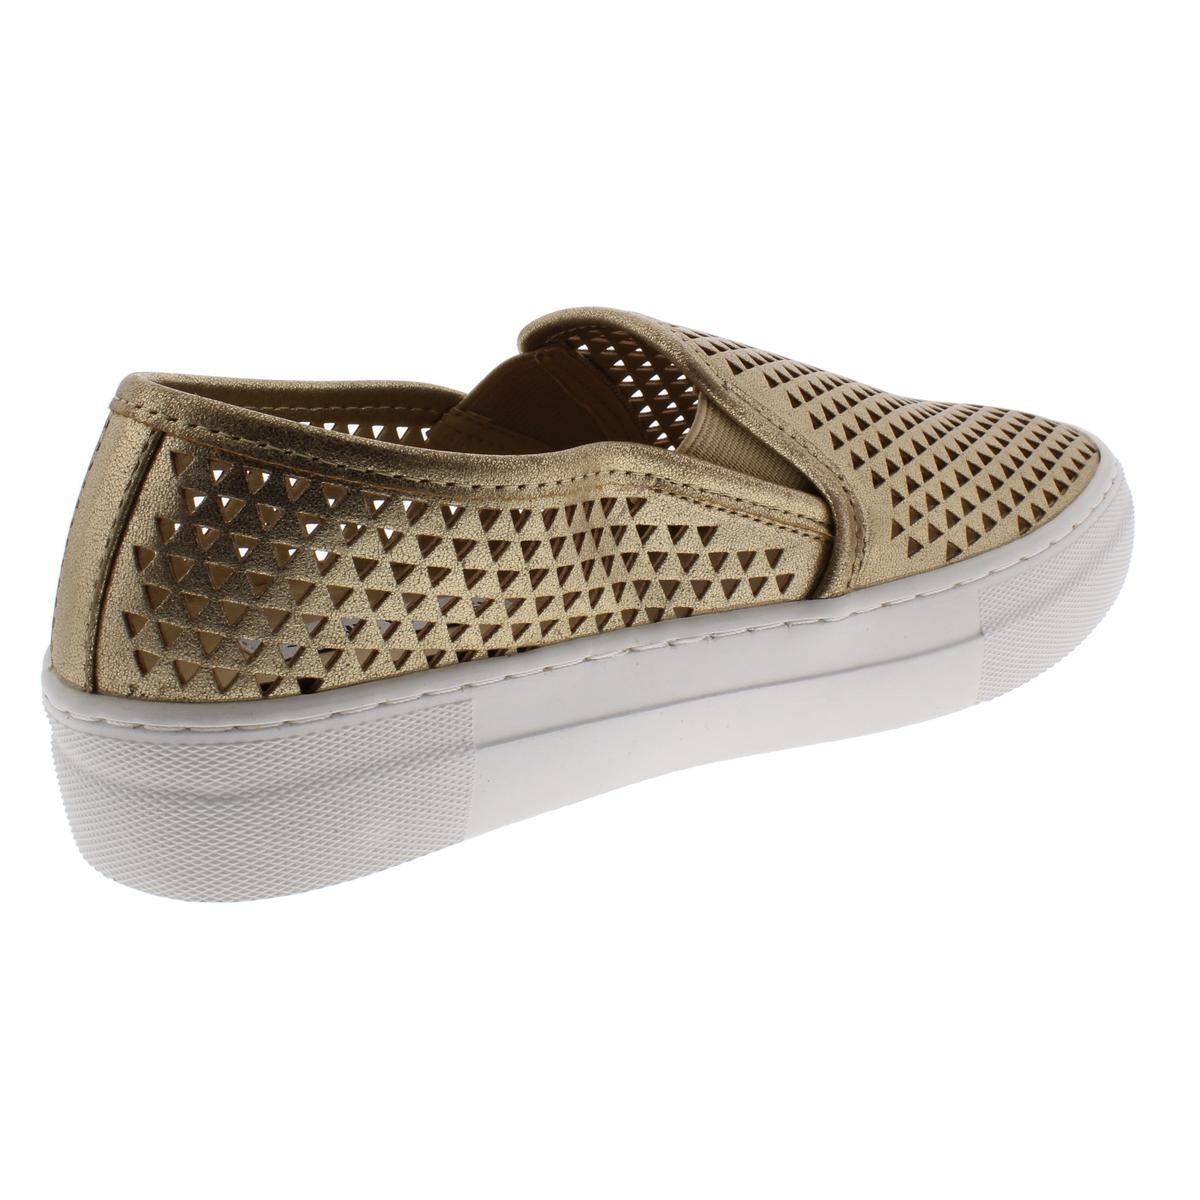 Steve-Madden-Womens-Gills-Classic-Low-Top-Fashion-Loafers-Sneakers-BHFO-8263 thumbnail 10